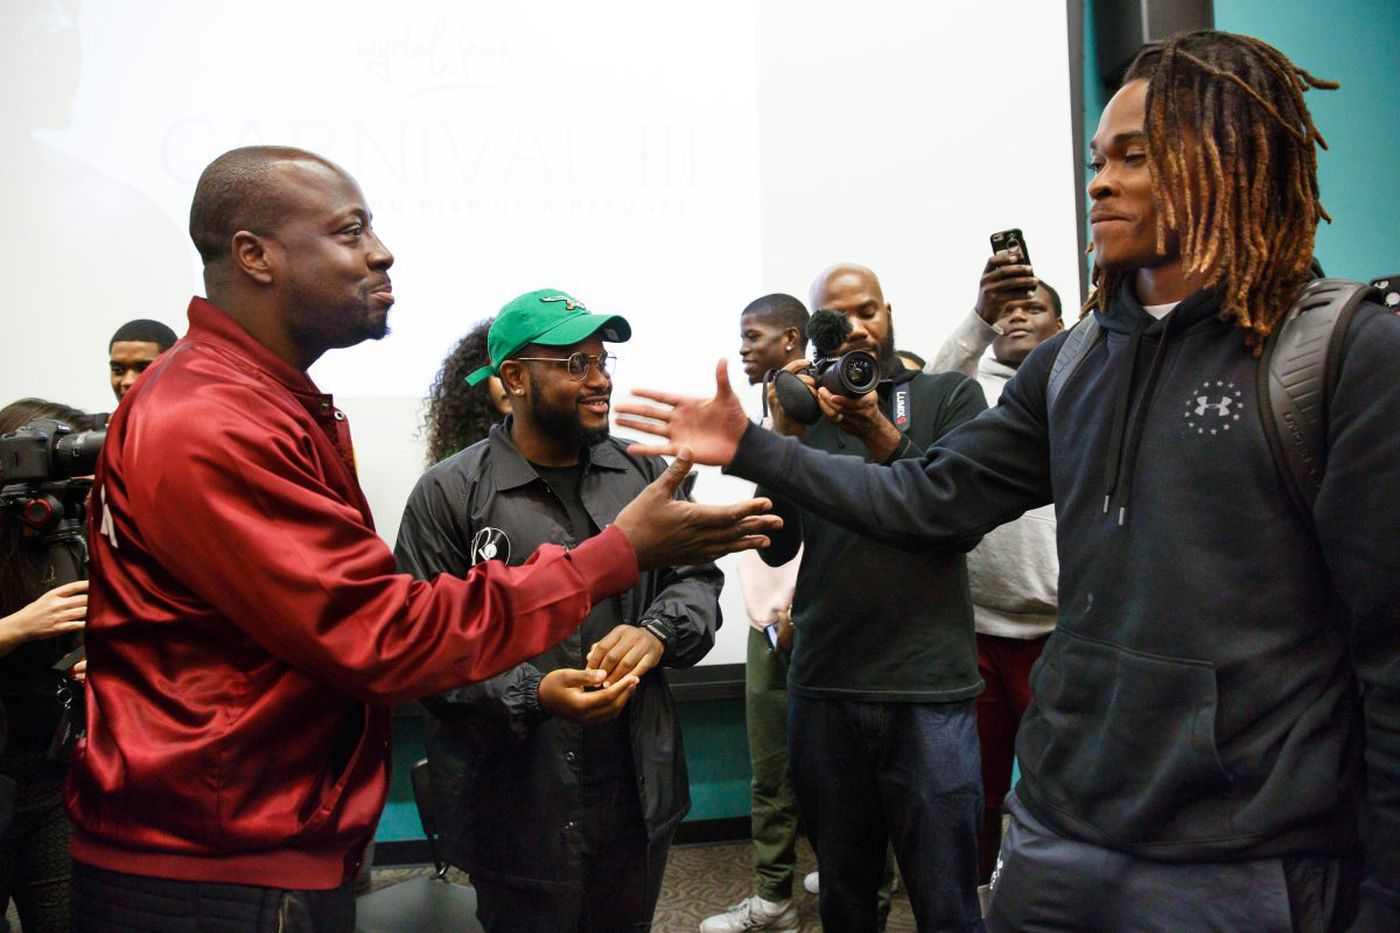 Wyclef Jean visits Temple hip-hop class: 'The new innovators are in this room'